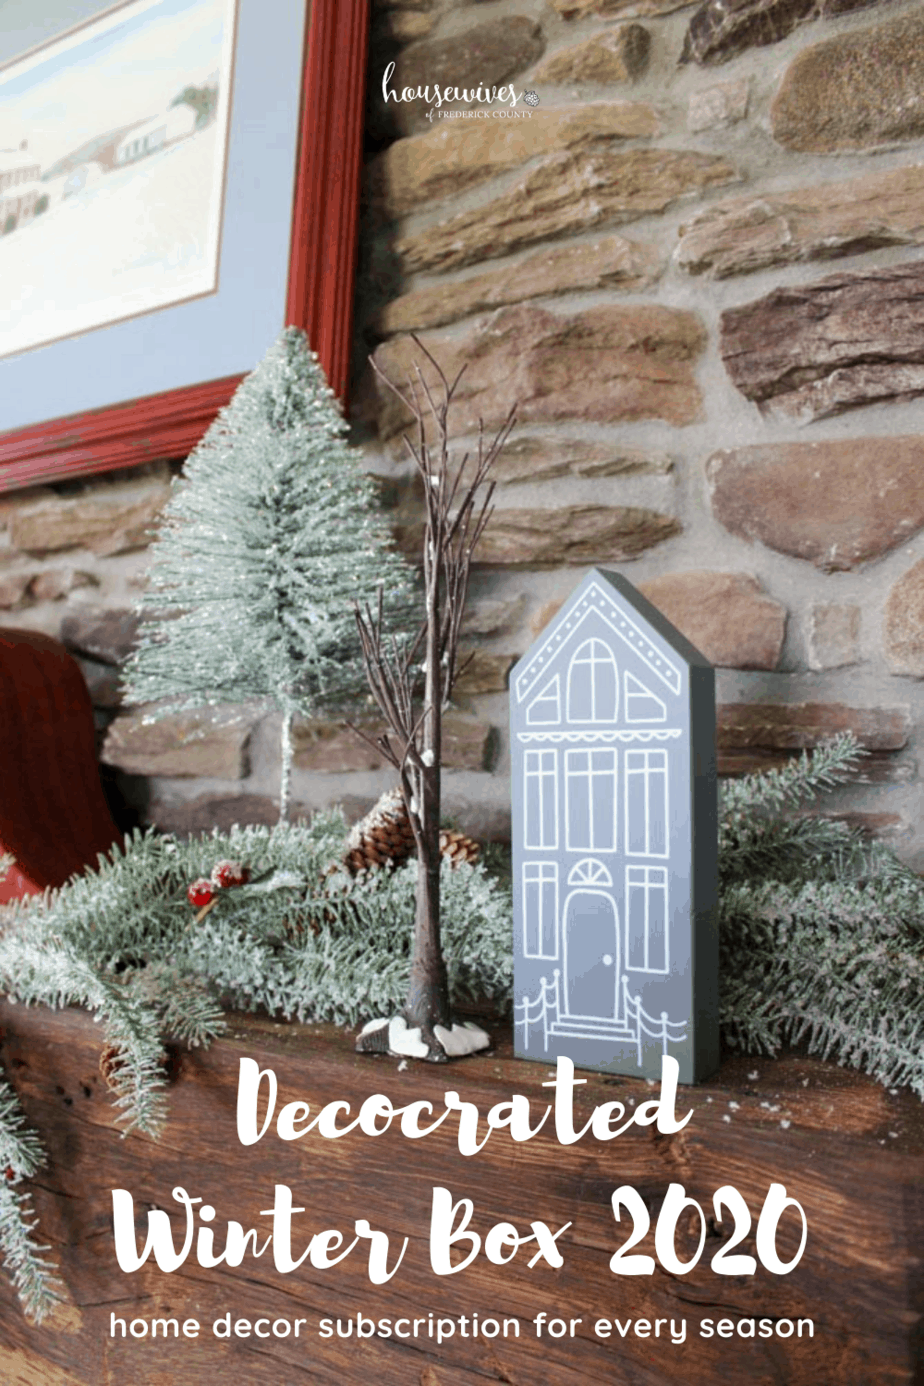 Decocrated Winter Box 2020 - Home Decor Subscription For Every Season